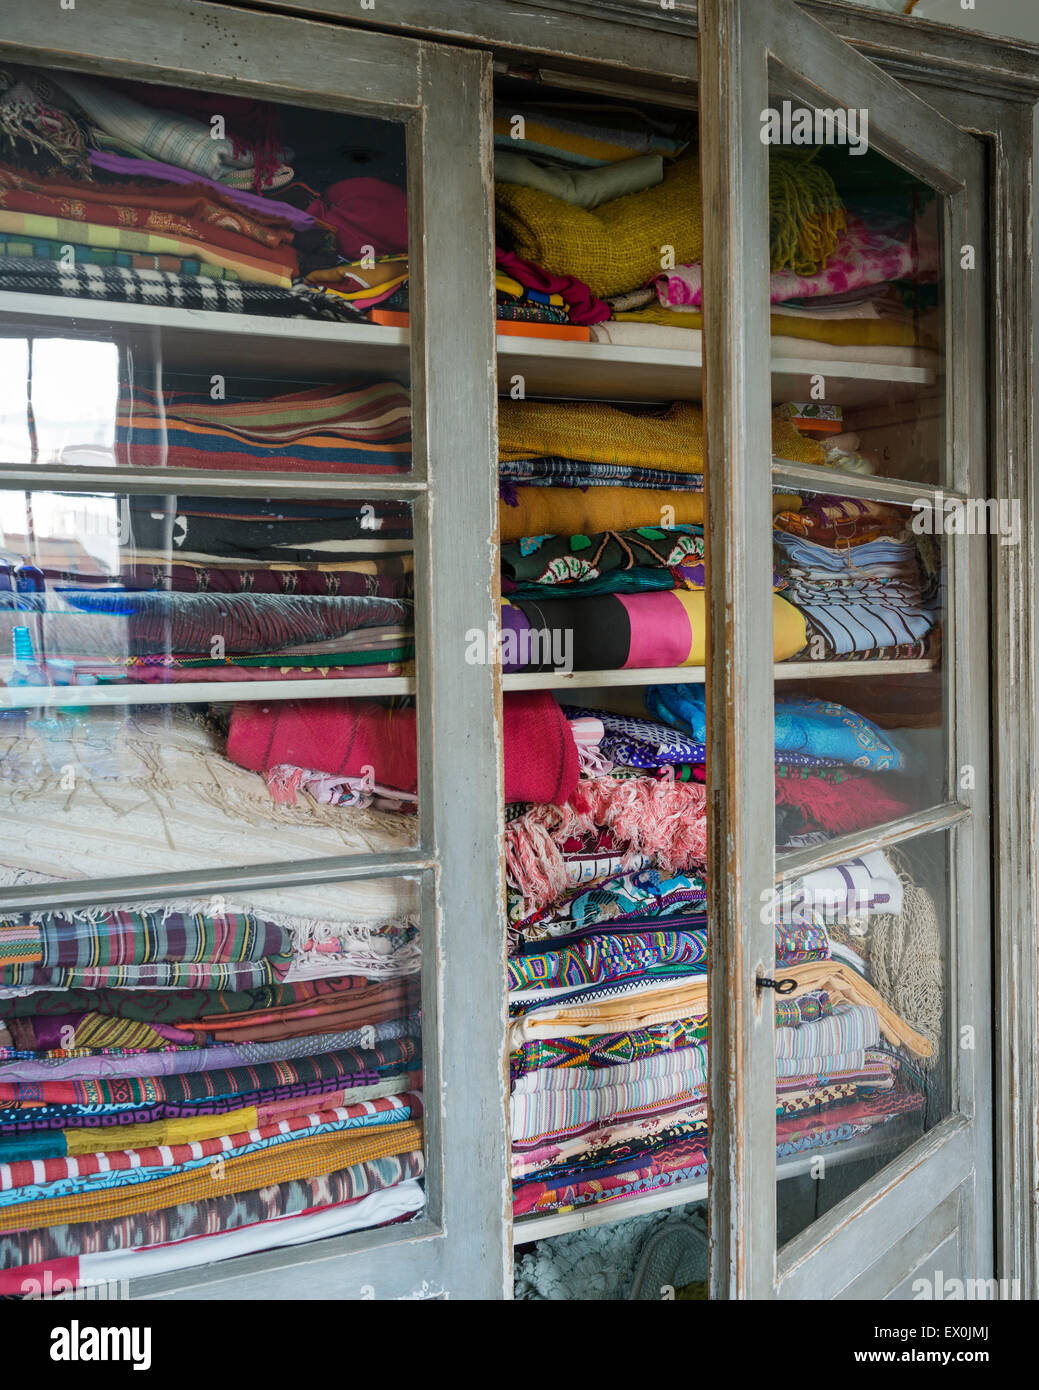 Glass fronted cabinet full of assorted fabrics and textiles from across the world - Stock Image